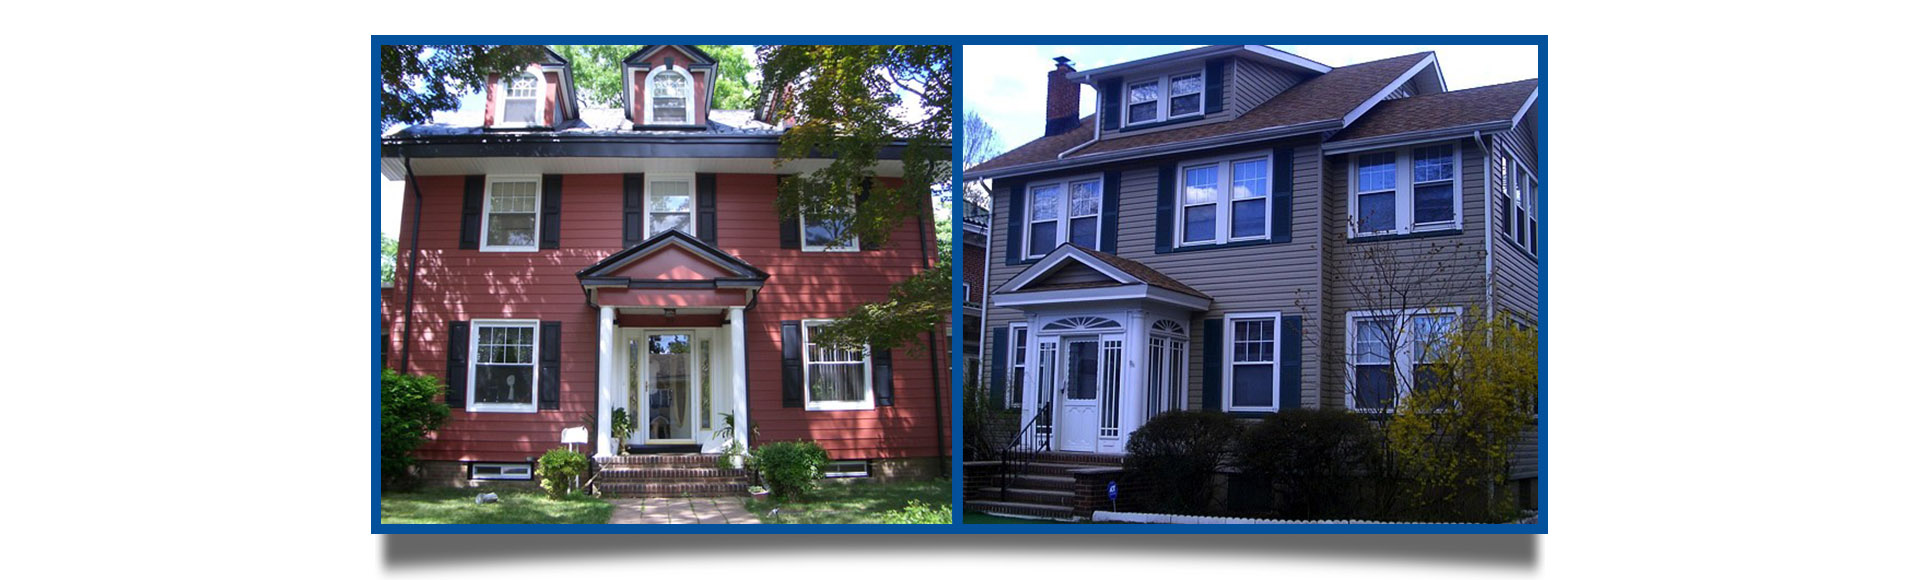 Nj window replacement contractor for Window replacement contractor